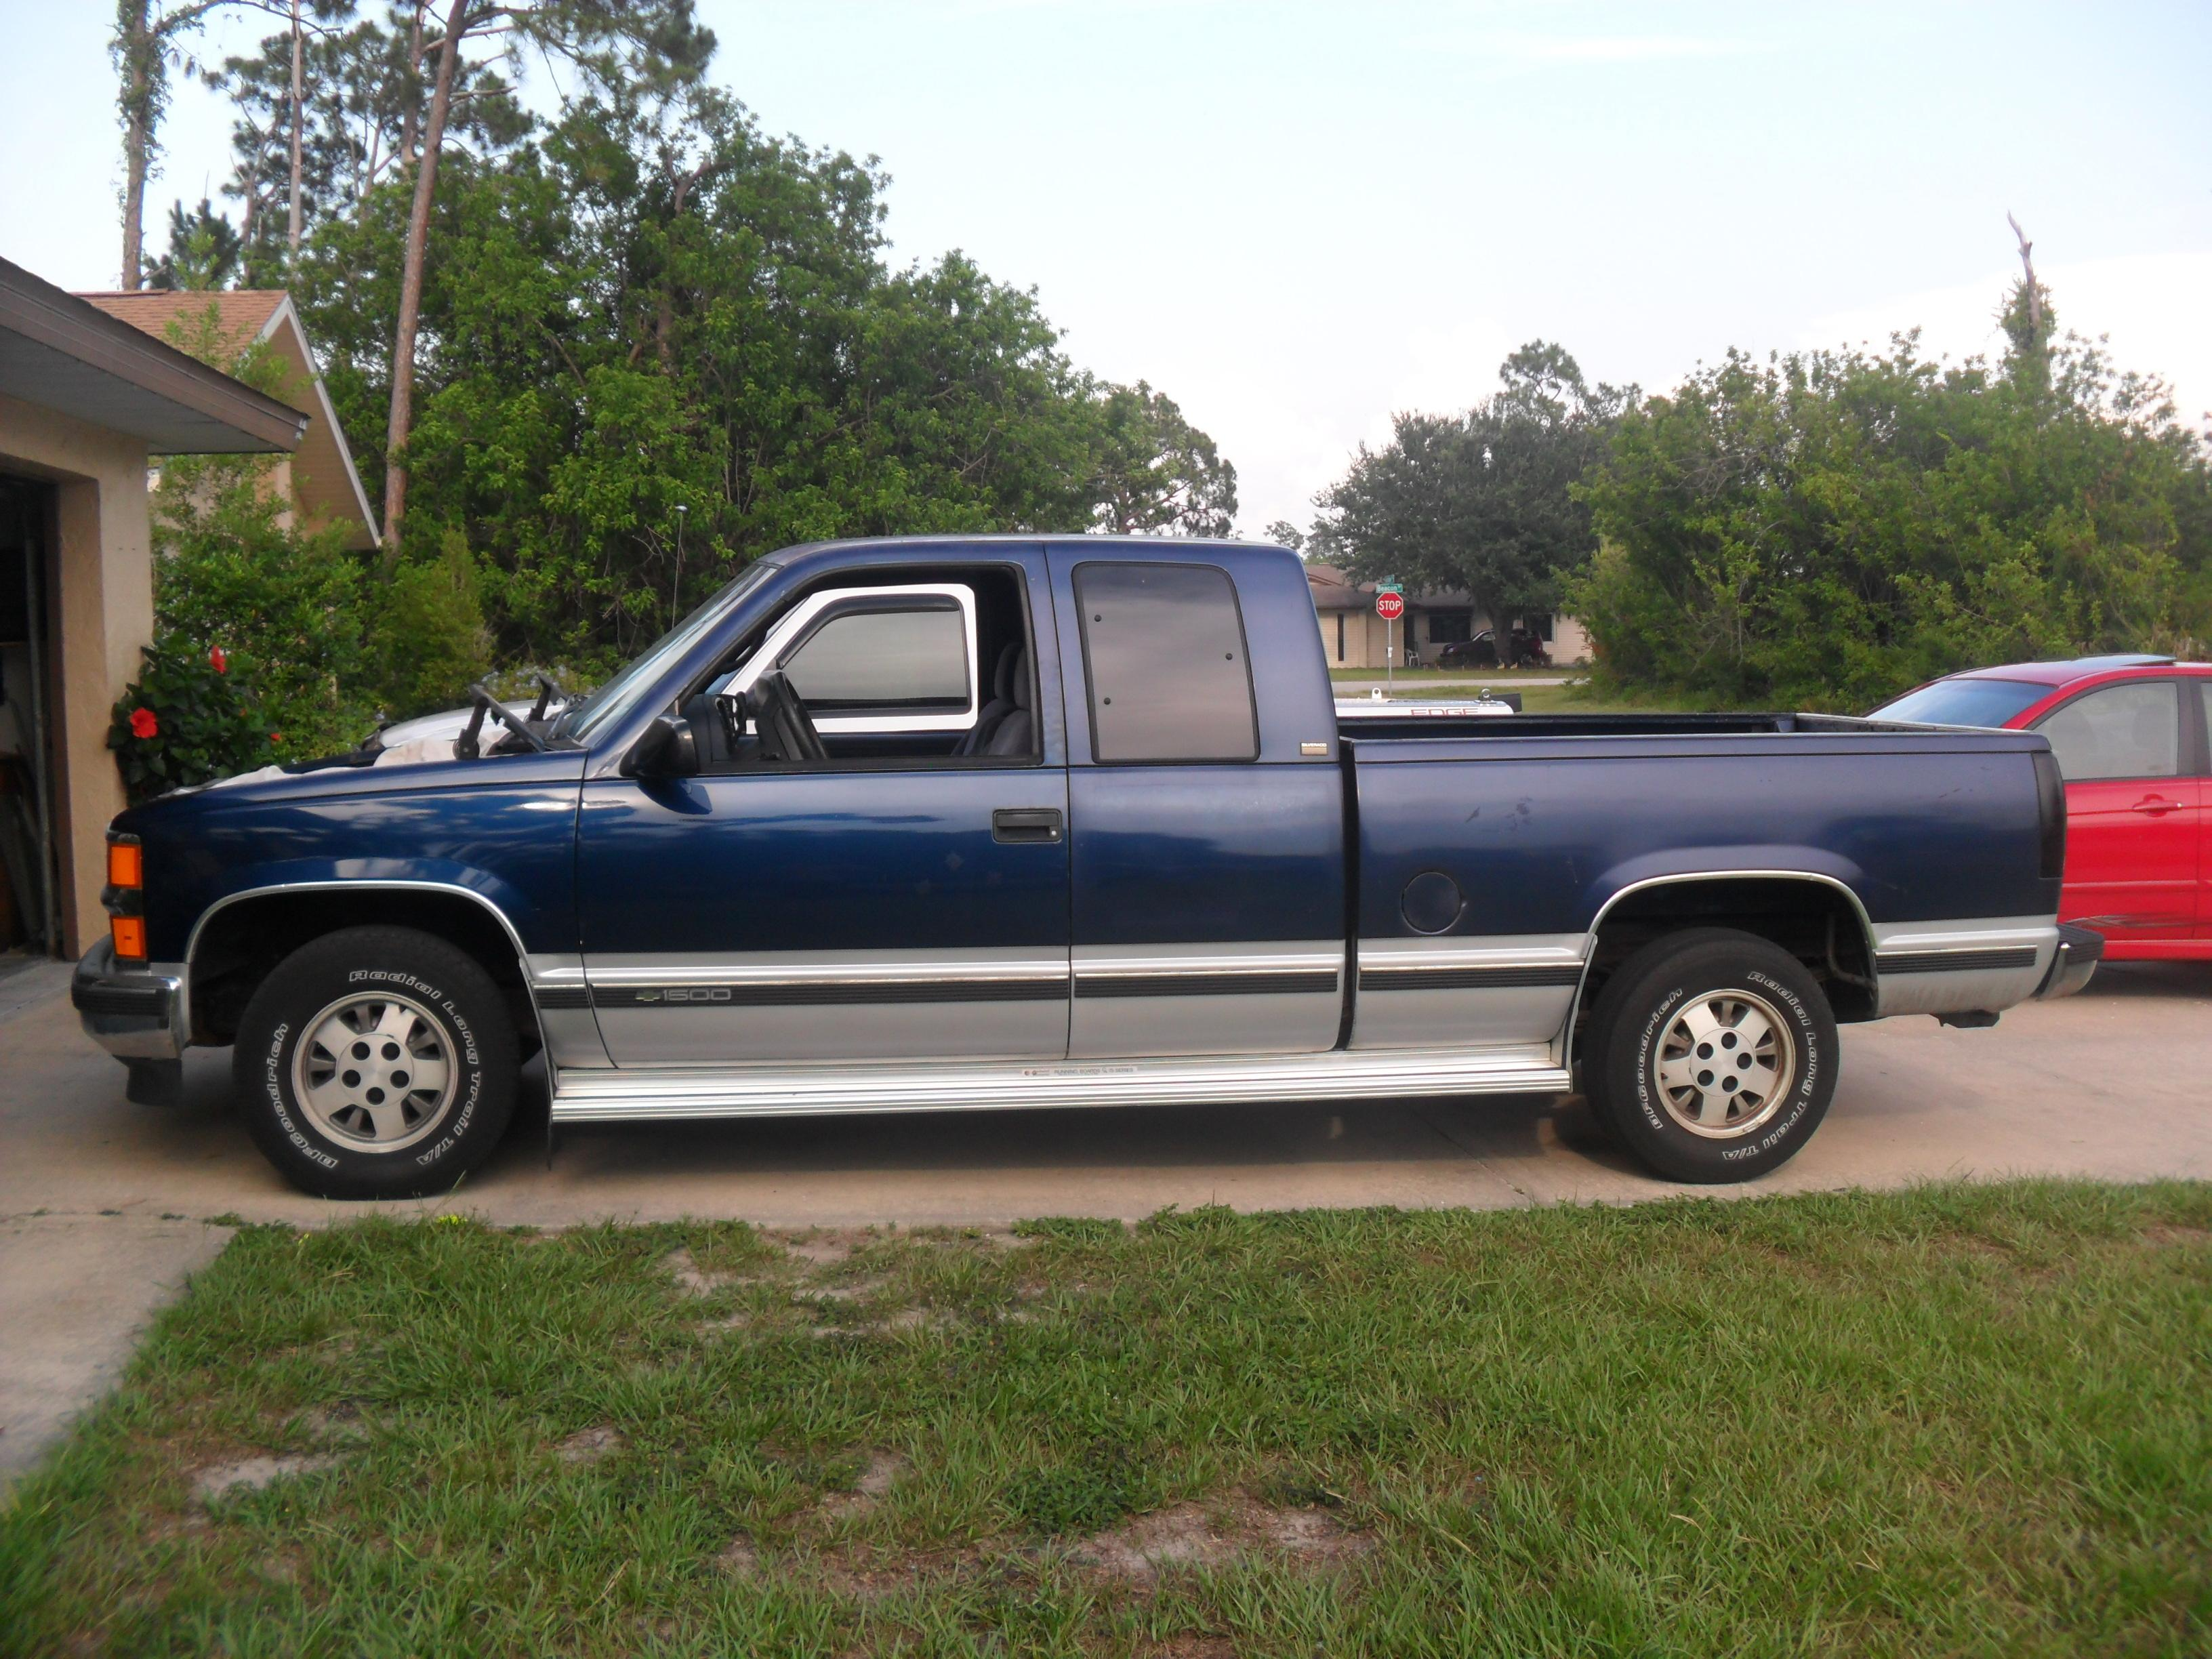 Blueandblack1887 1995 chevrolet silverado 1500 extended cab s photo gallery at cardomain